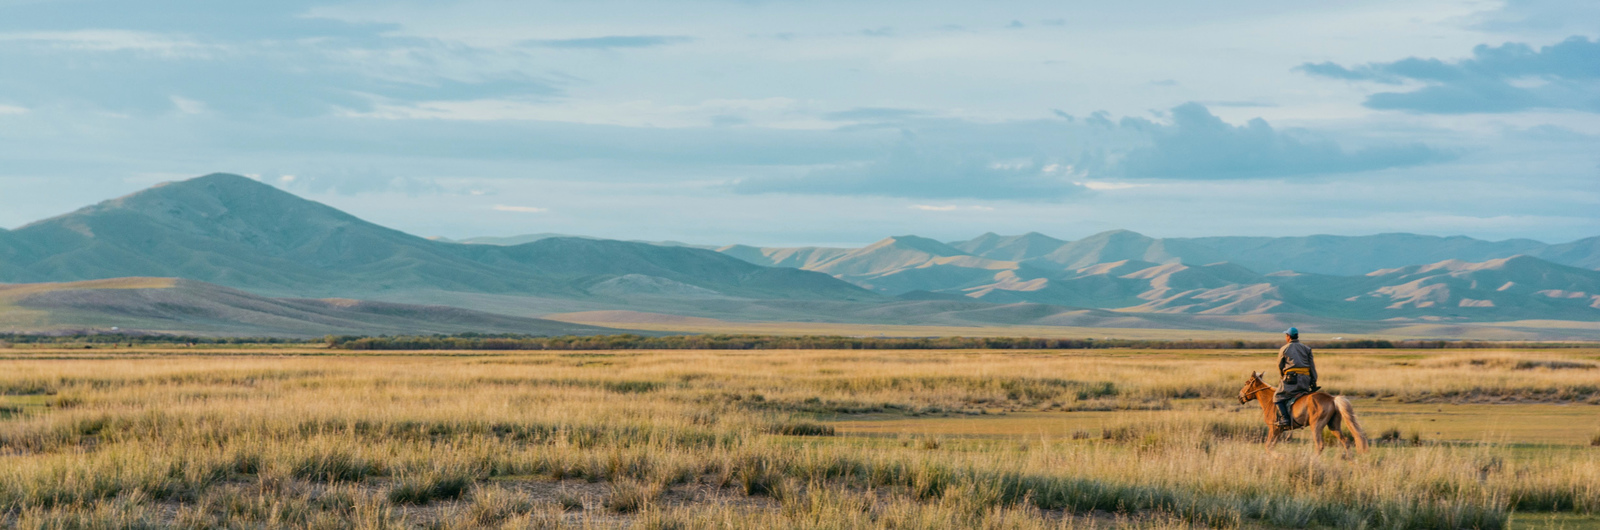 city header mongolia landscape